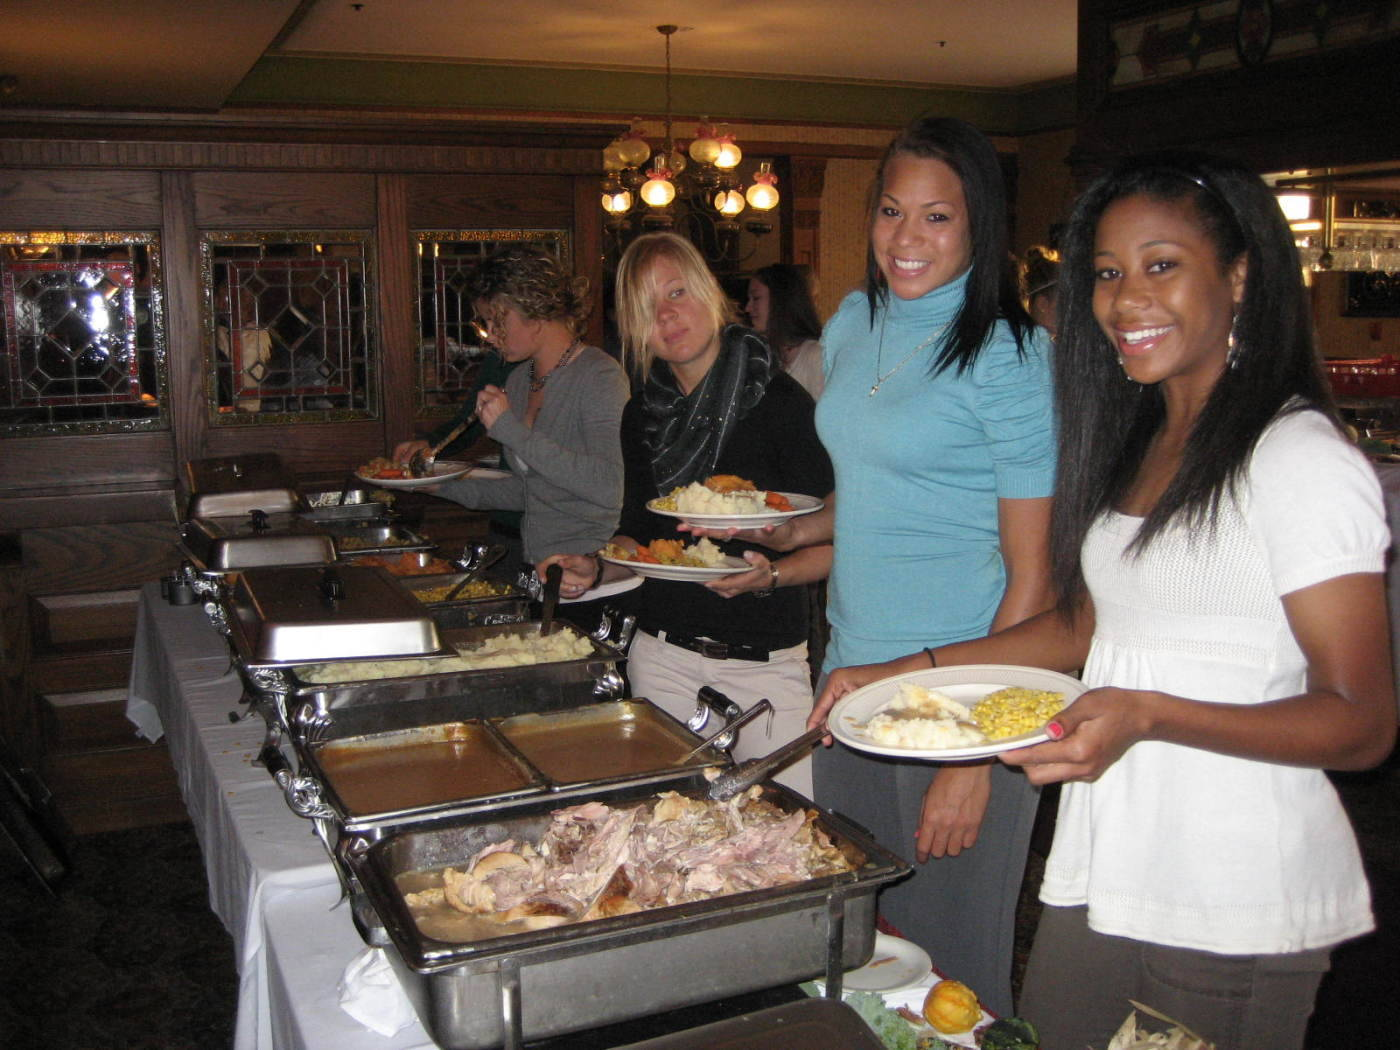 (L to R): Katrin Schmidt, Toni Pressley and Casey Short loading up their plates.